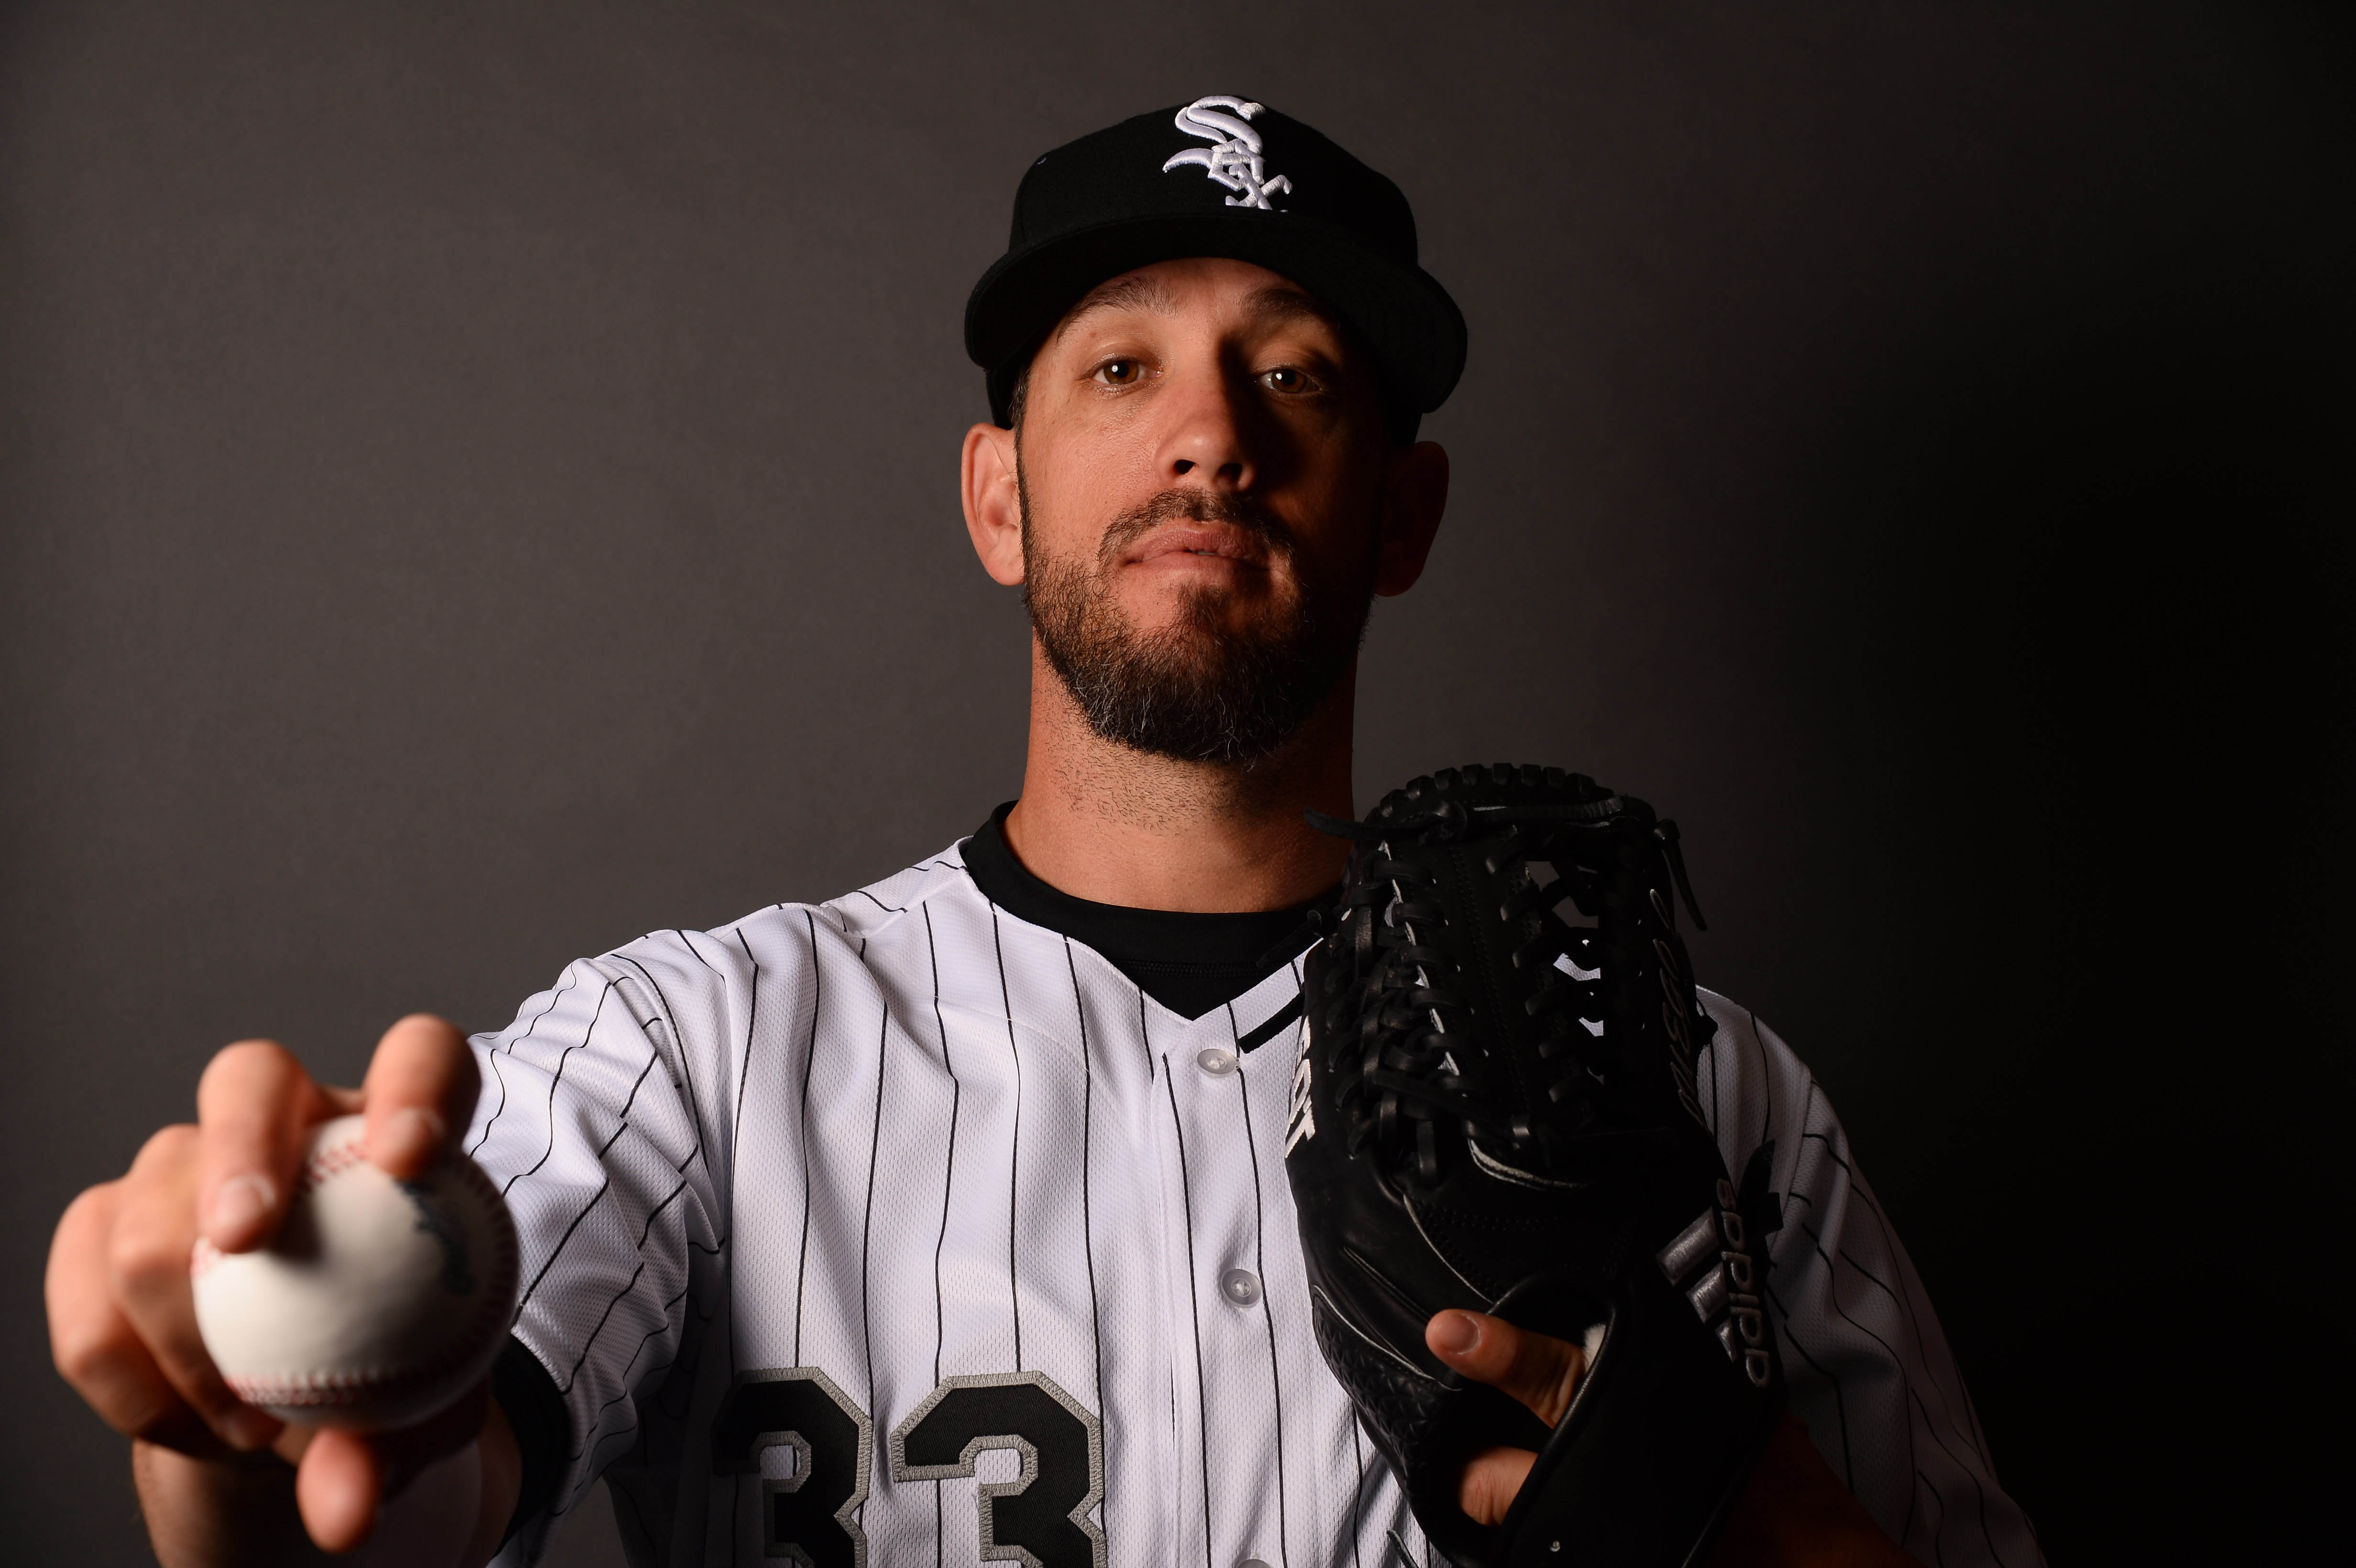 MLB: Chicago White Sox-Media Day